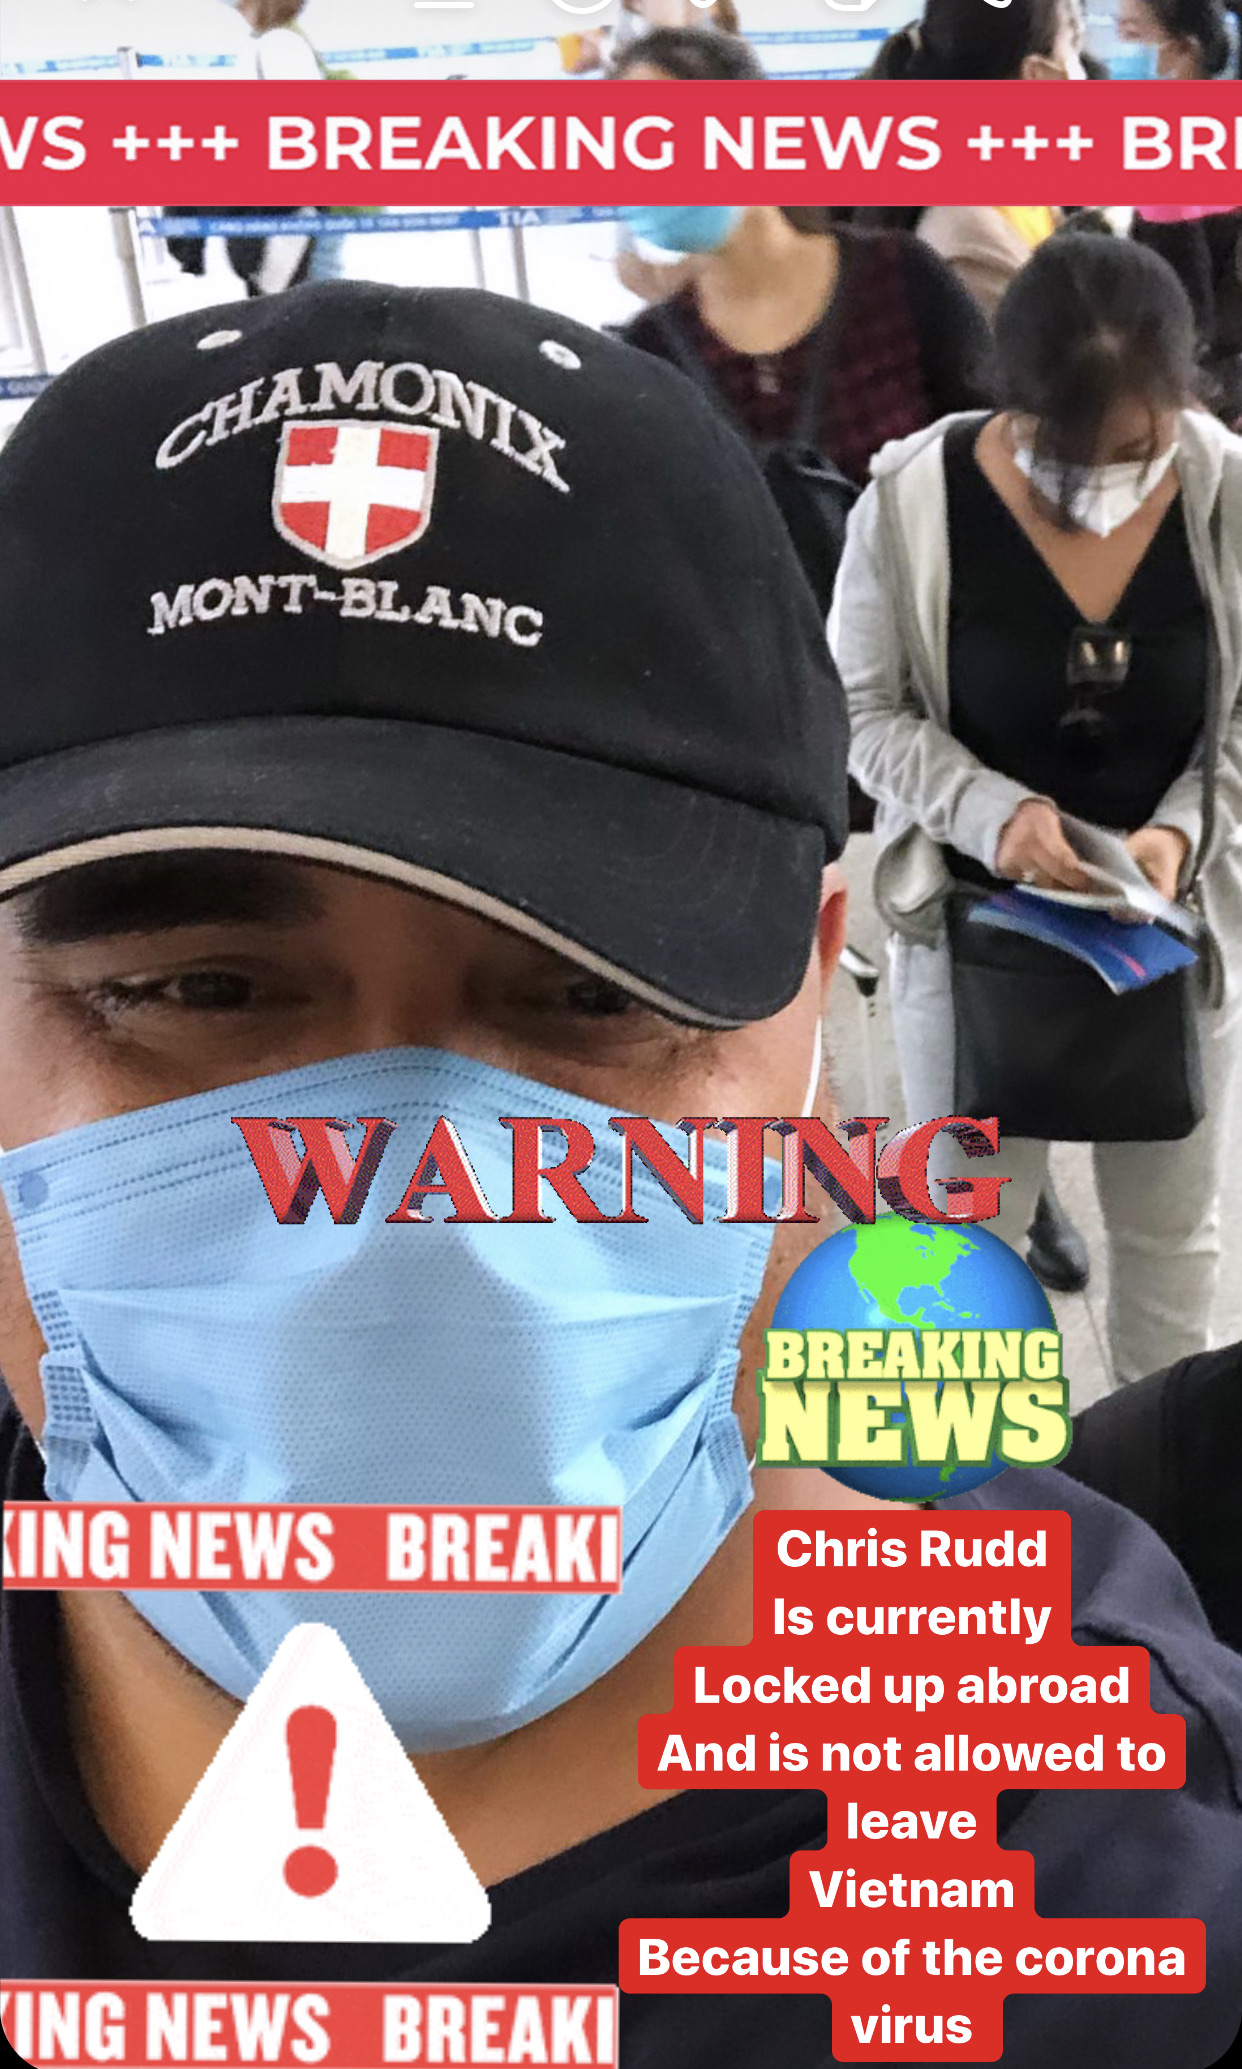 Coronavirus halts Chris Rudd from returning home from Vietnam since all flights are cancelled